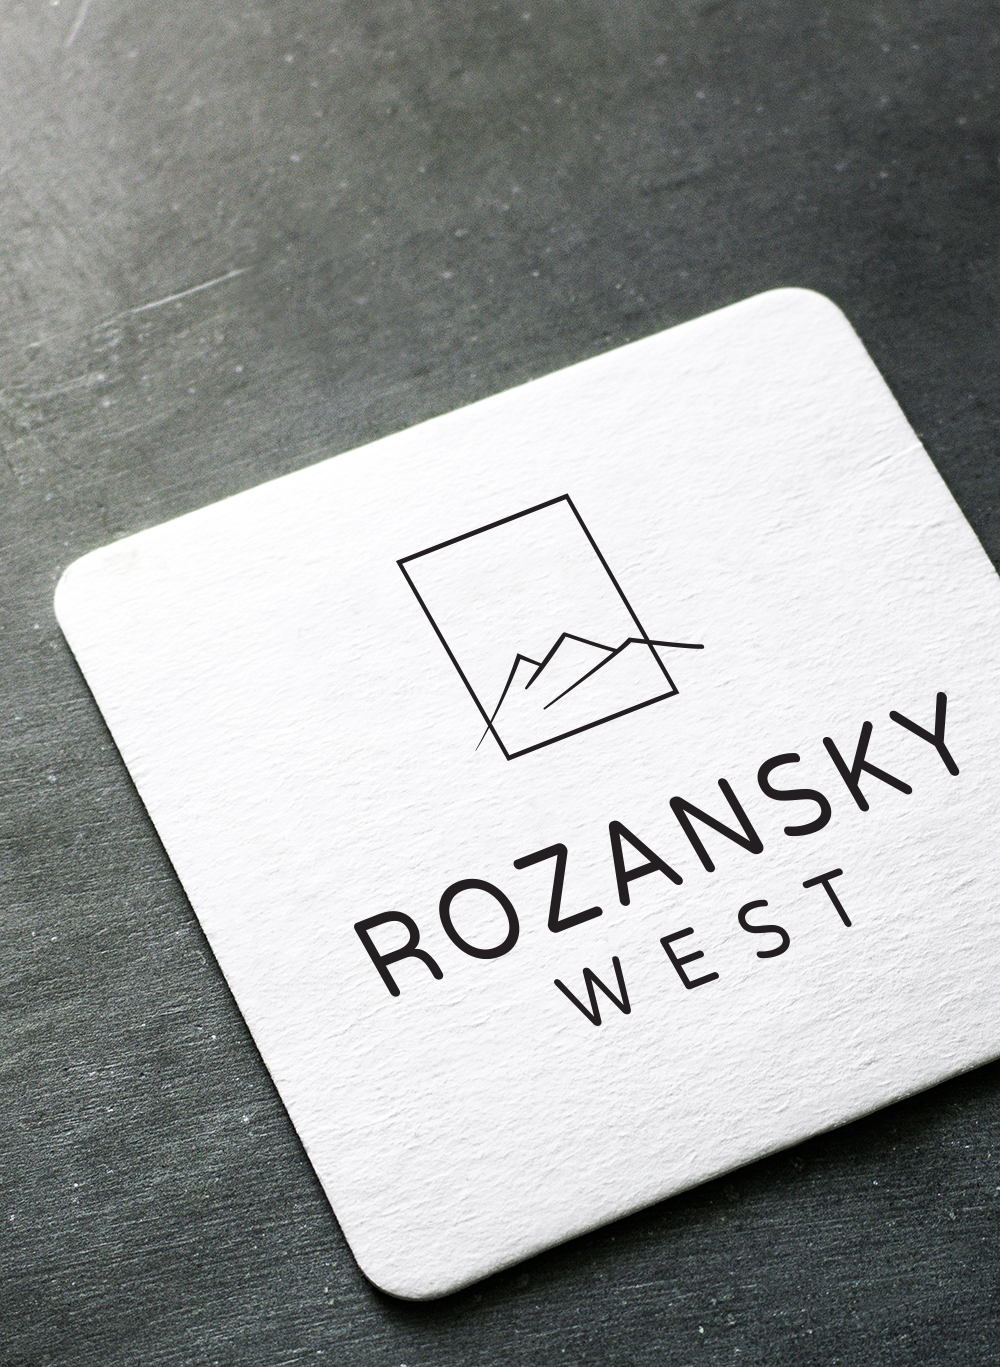 Rozansky West Logo